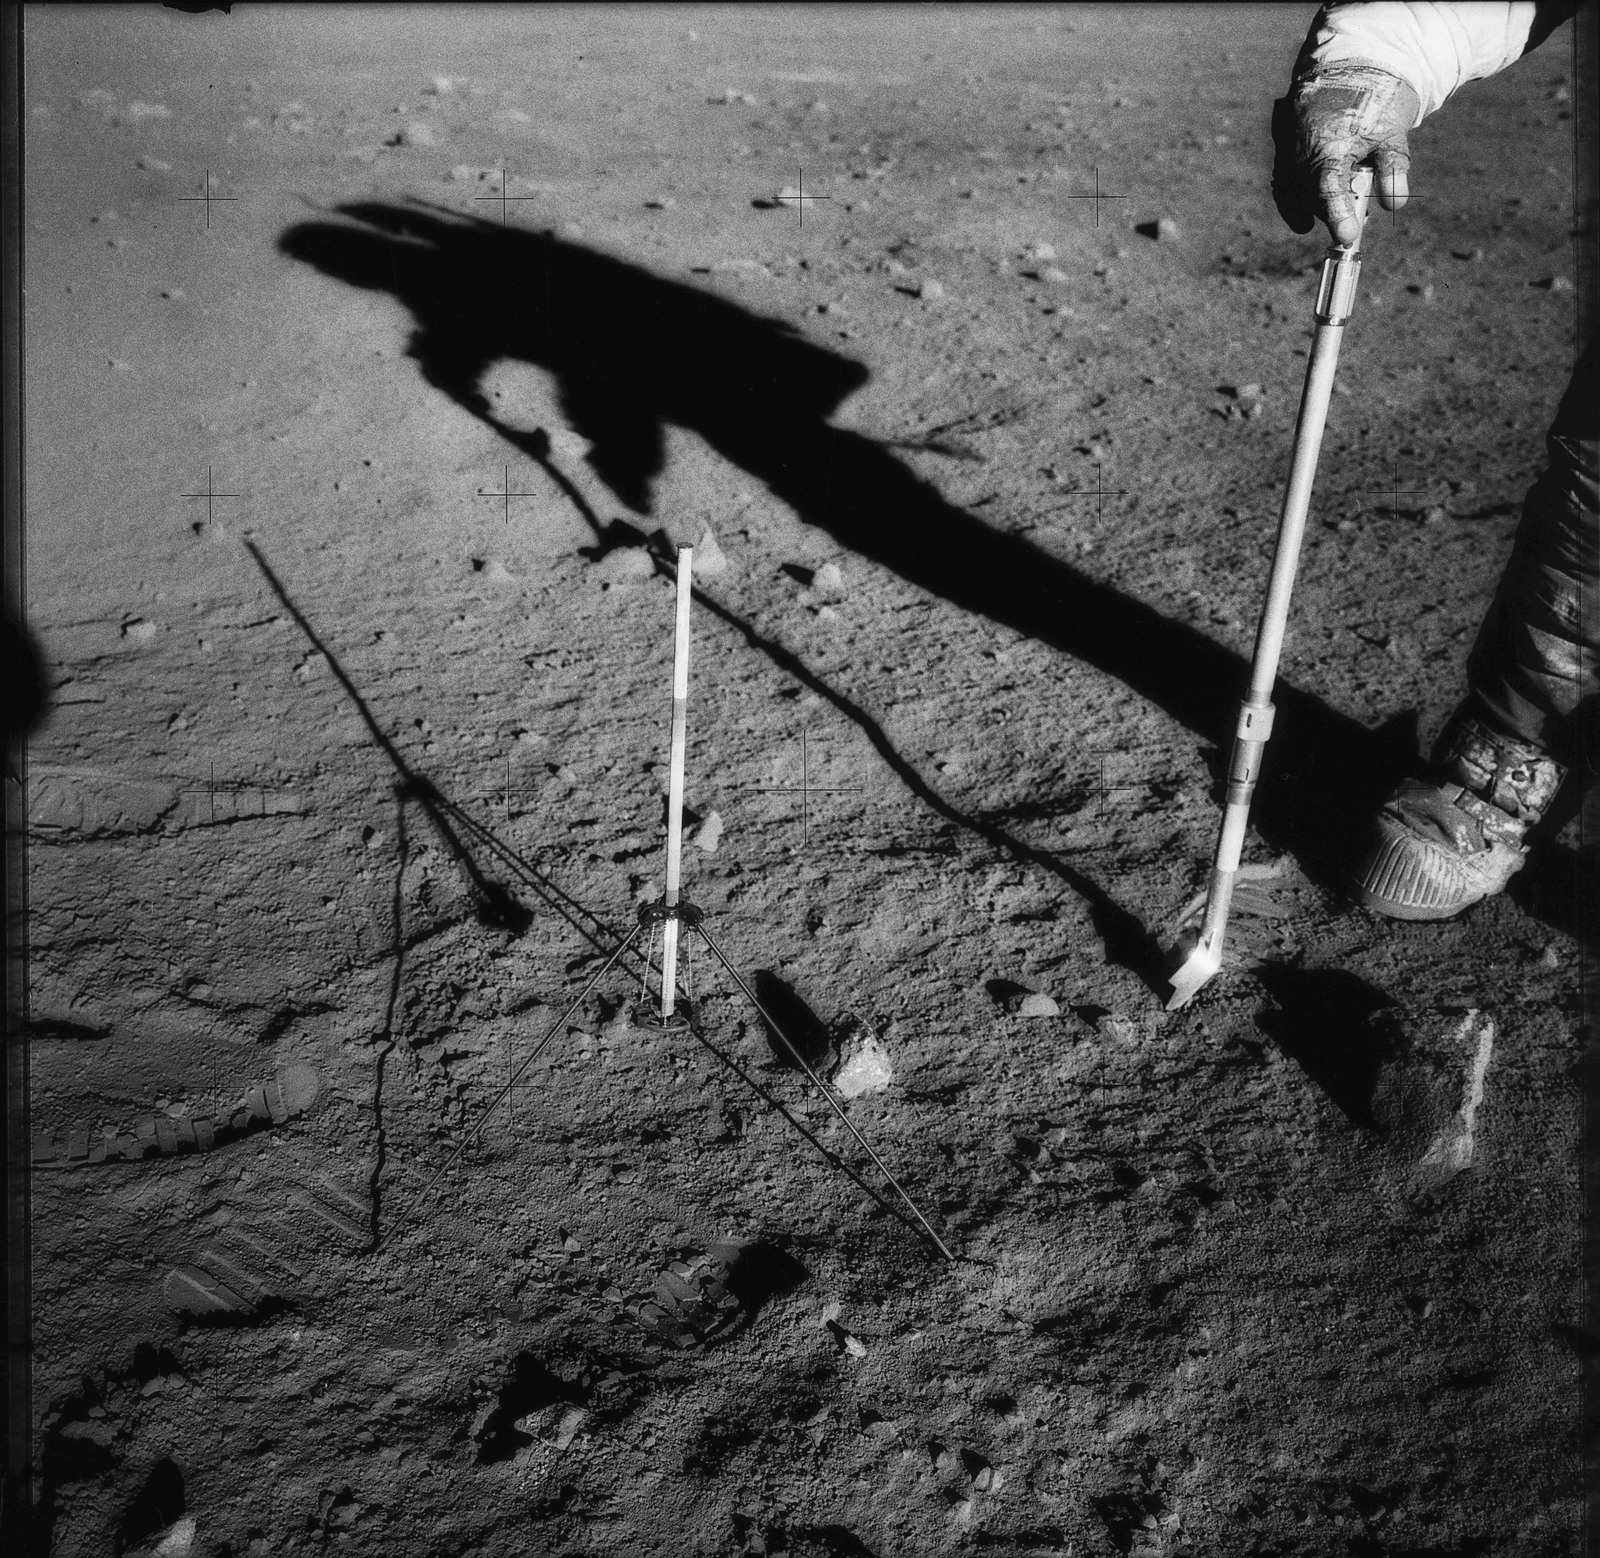 AS12-49-7313 - Apollo 12 - Apollo 12 Mission image  - Charles Conrad Jr., commander, is photographed collection rocks